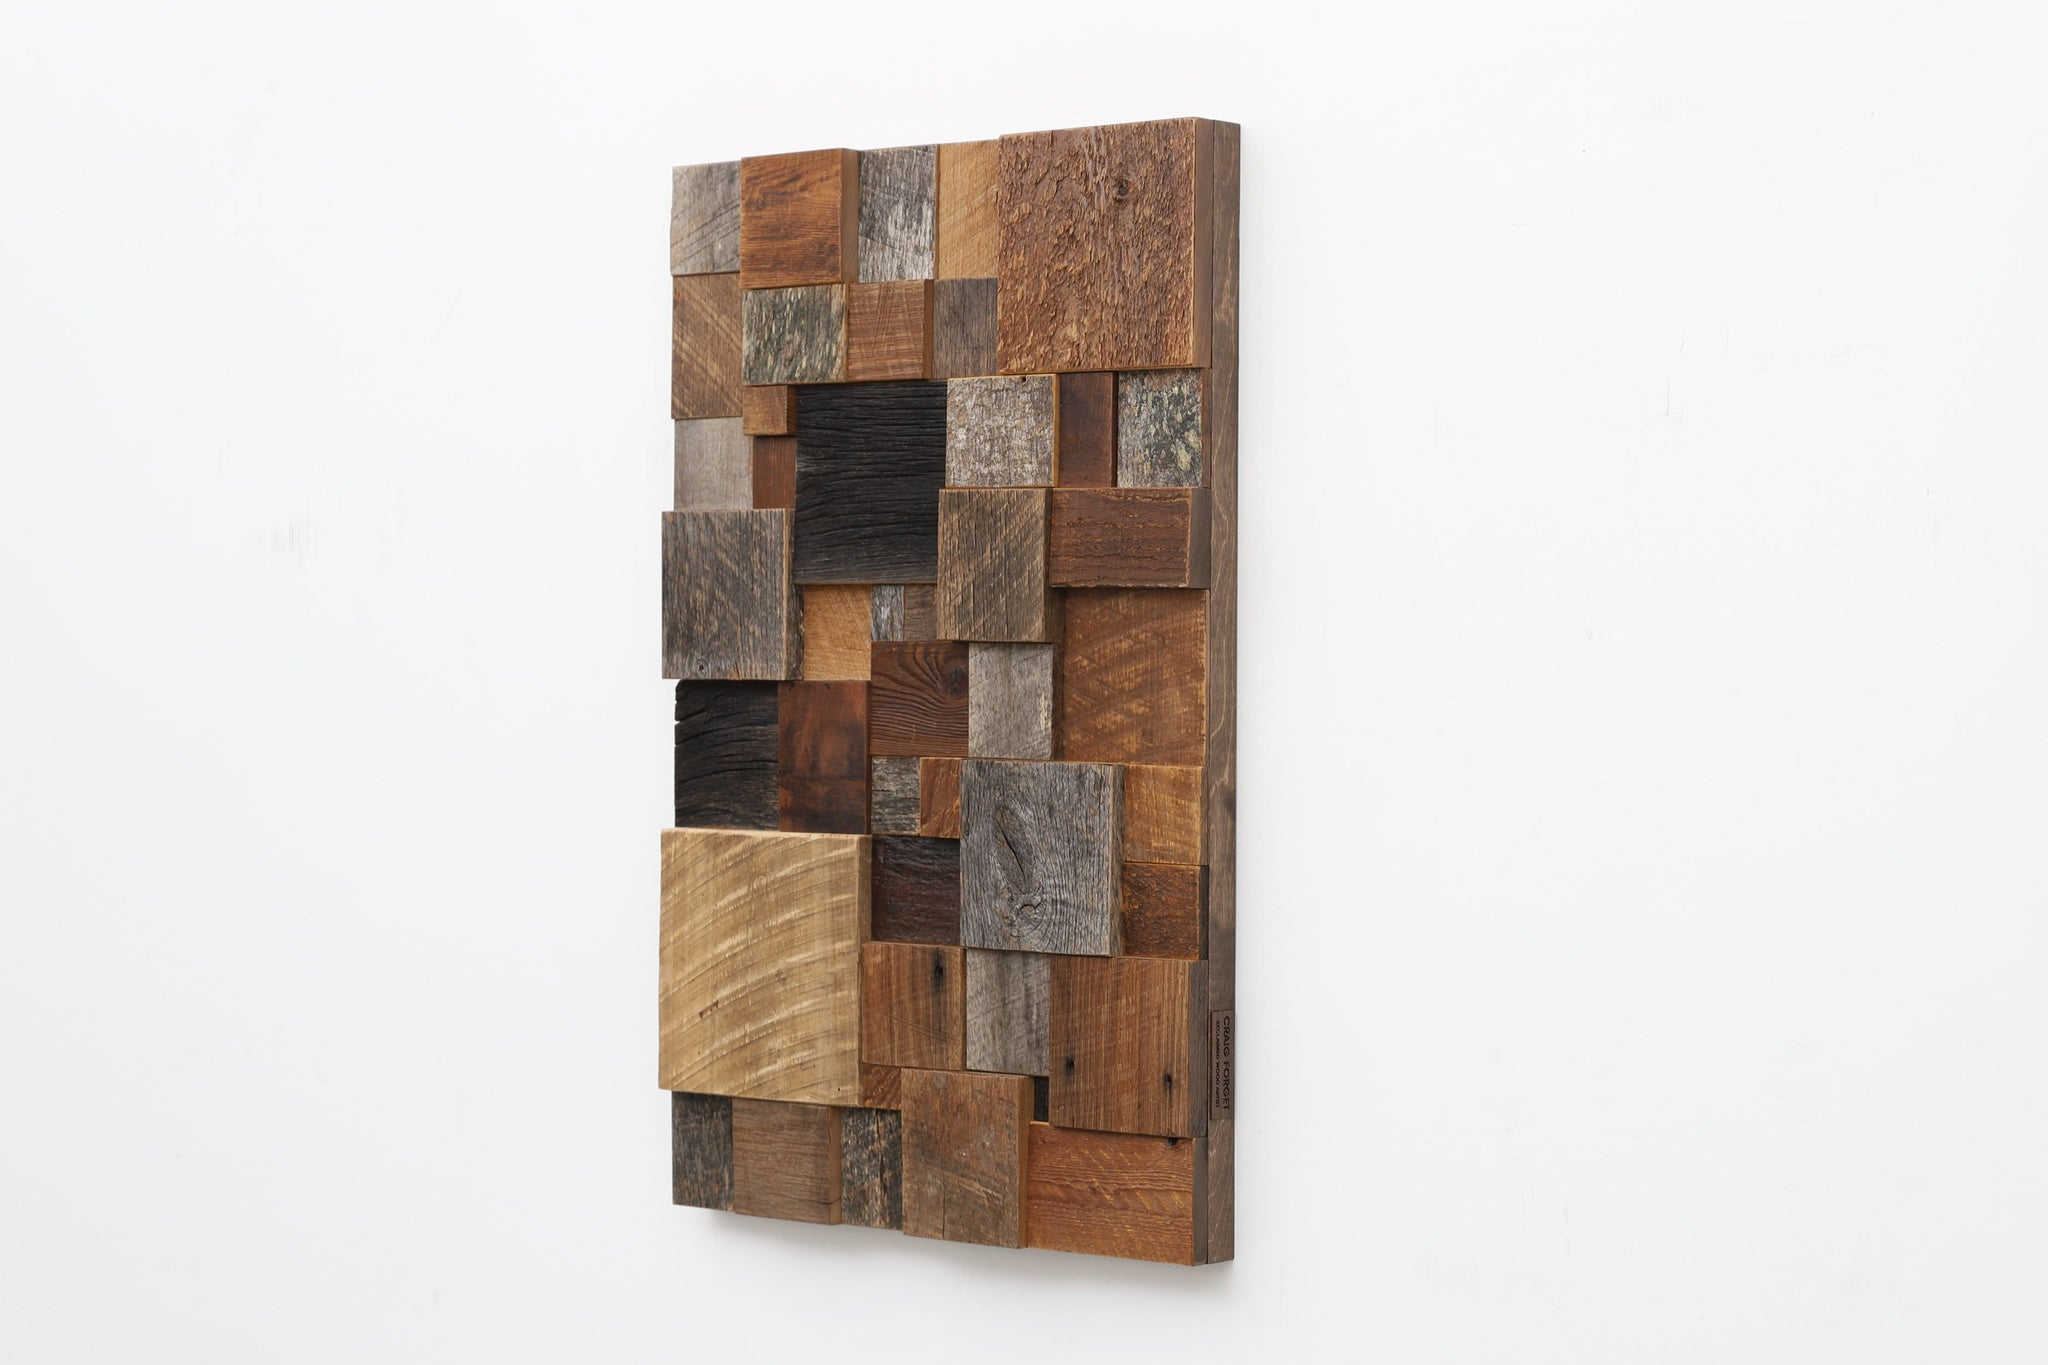 geometric wood wall sculpture